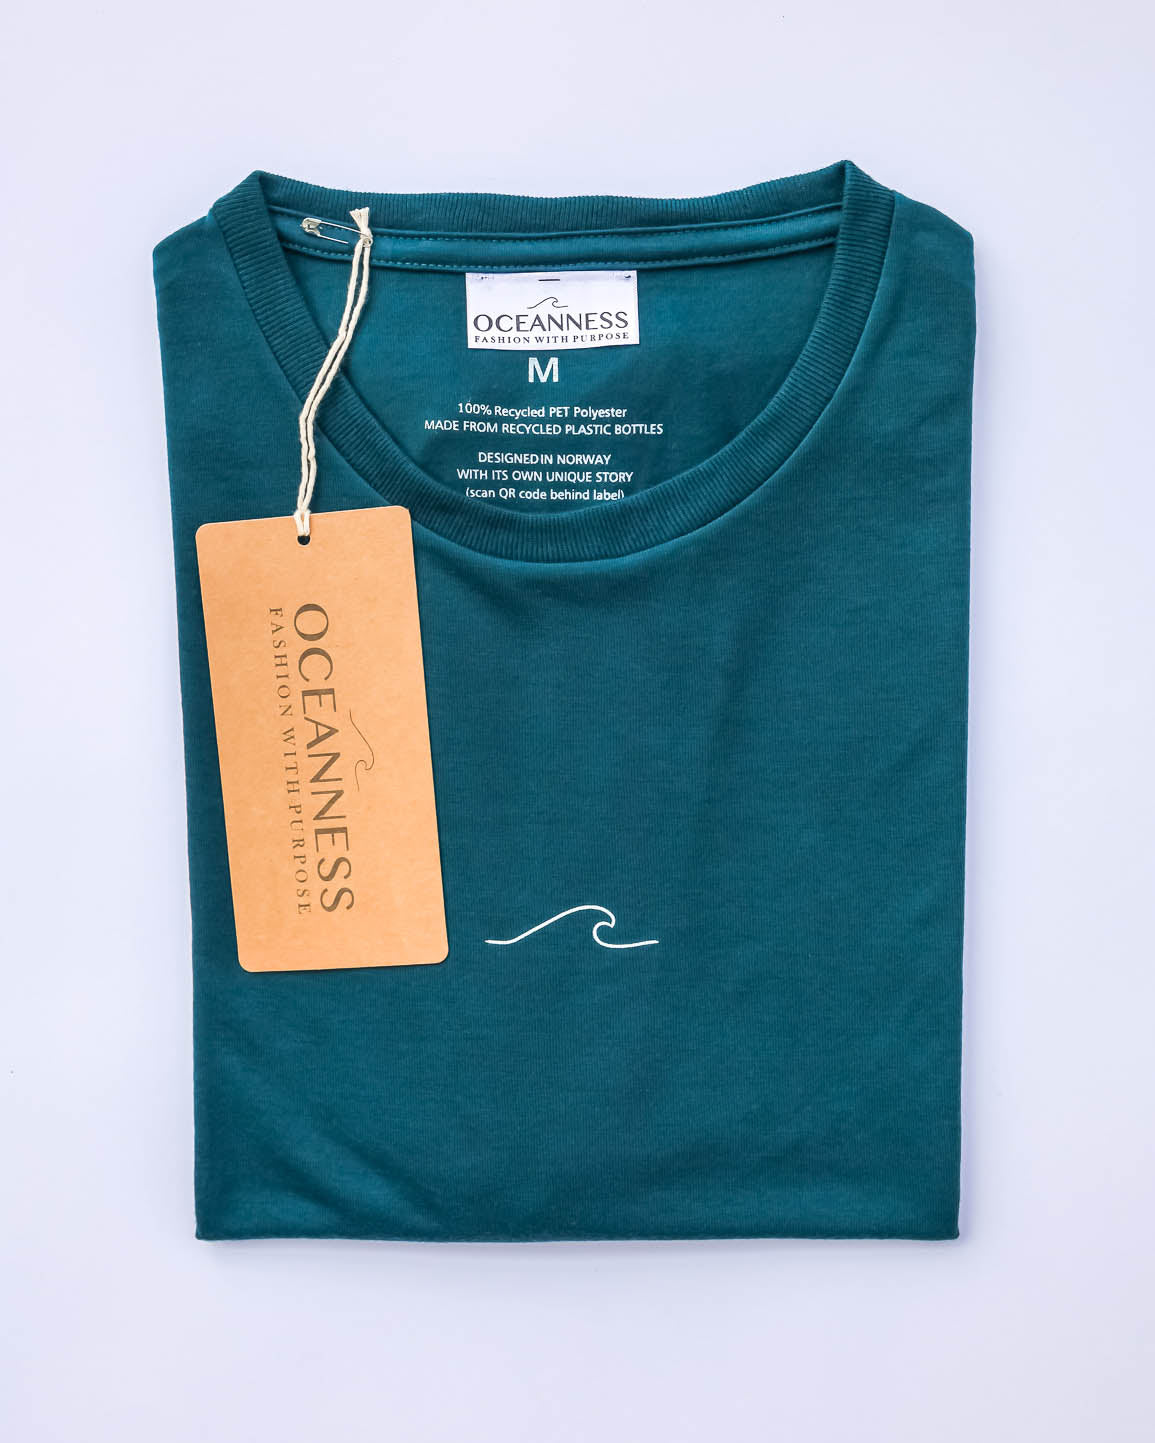 Model posing in Men's Eco Oceanness T-shirt in Ocean Green